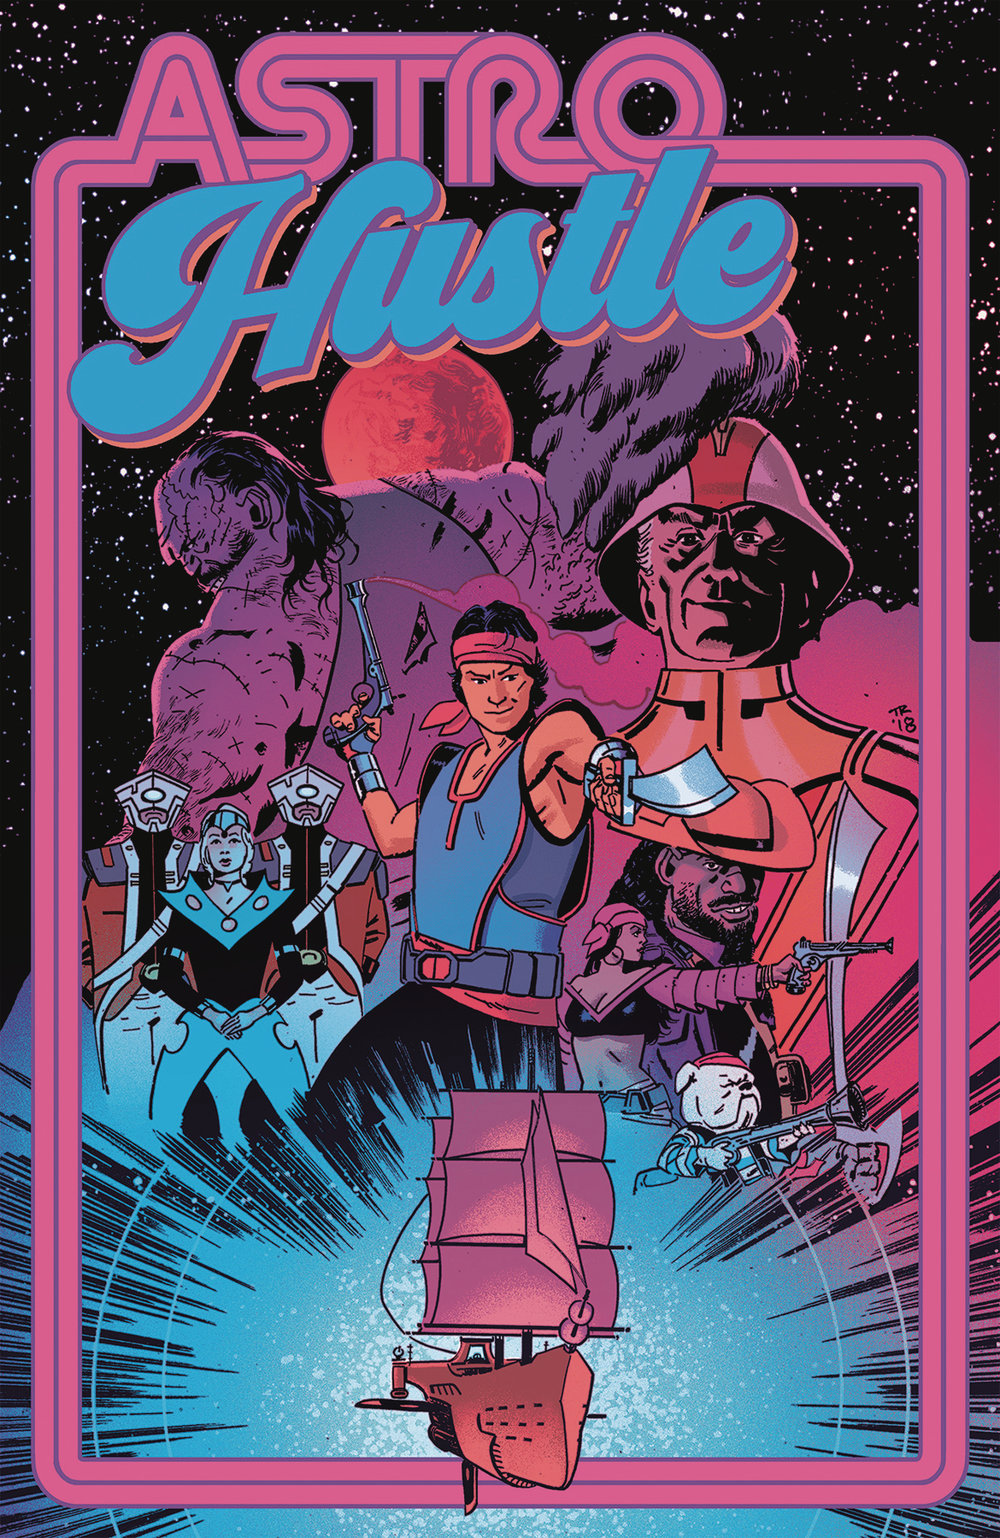 Astro Hustle #1  is out 3/6/2019.